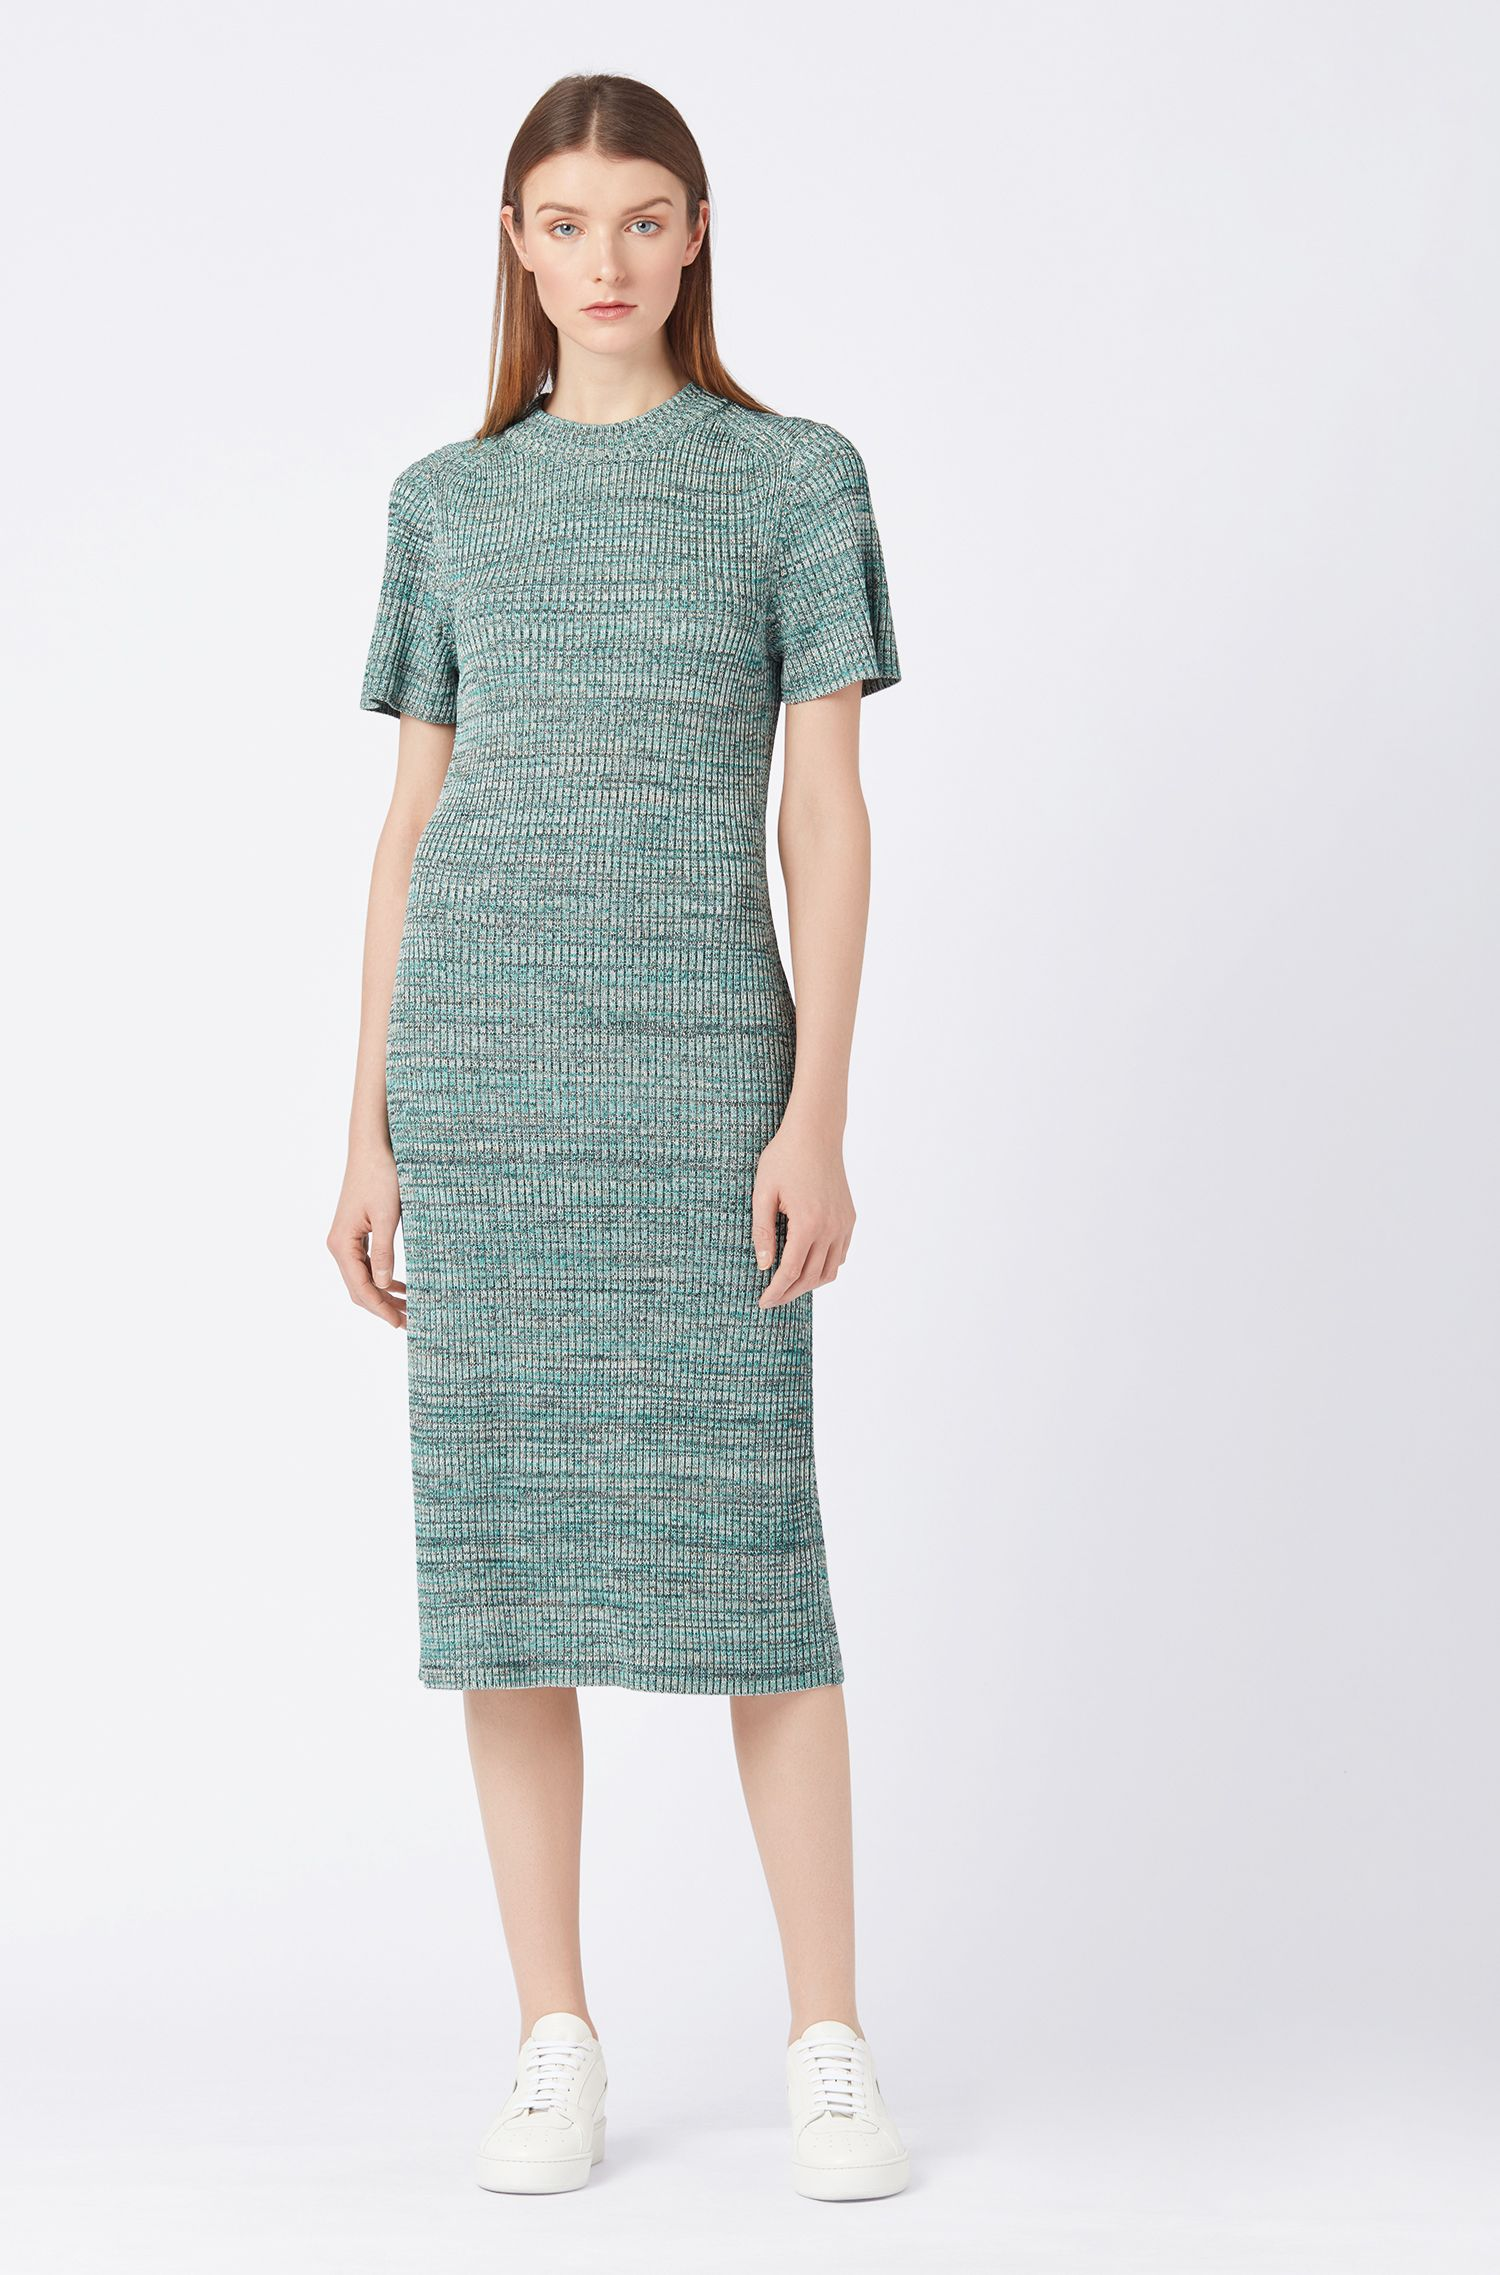 Short-sleeved knitted dress in multicoloured mouliné fabric, Patterned